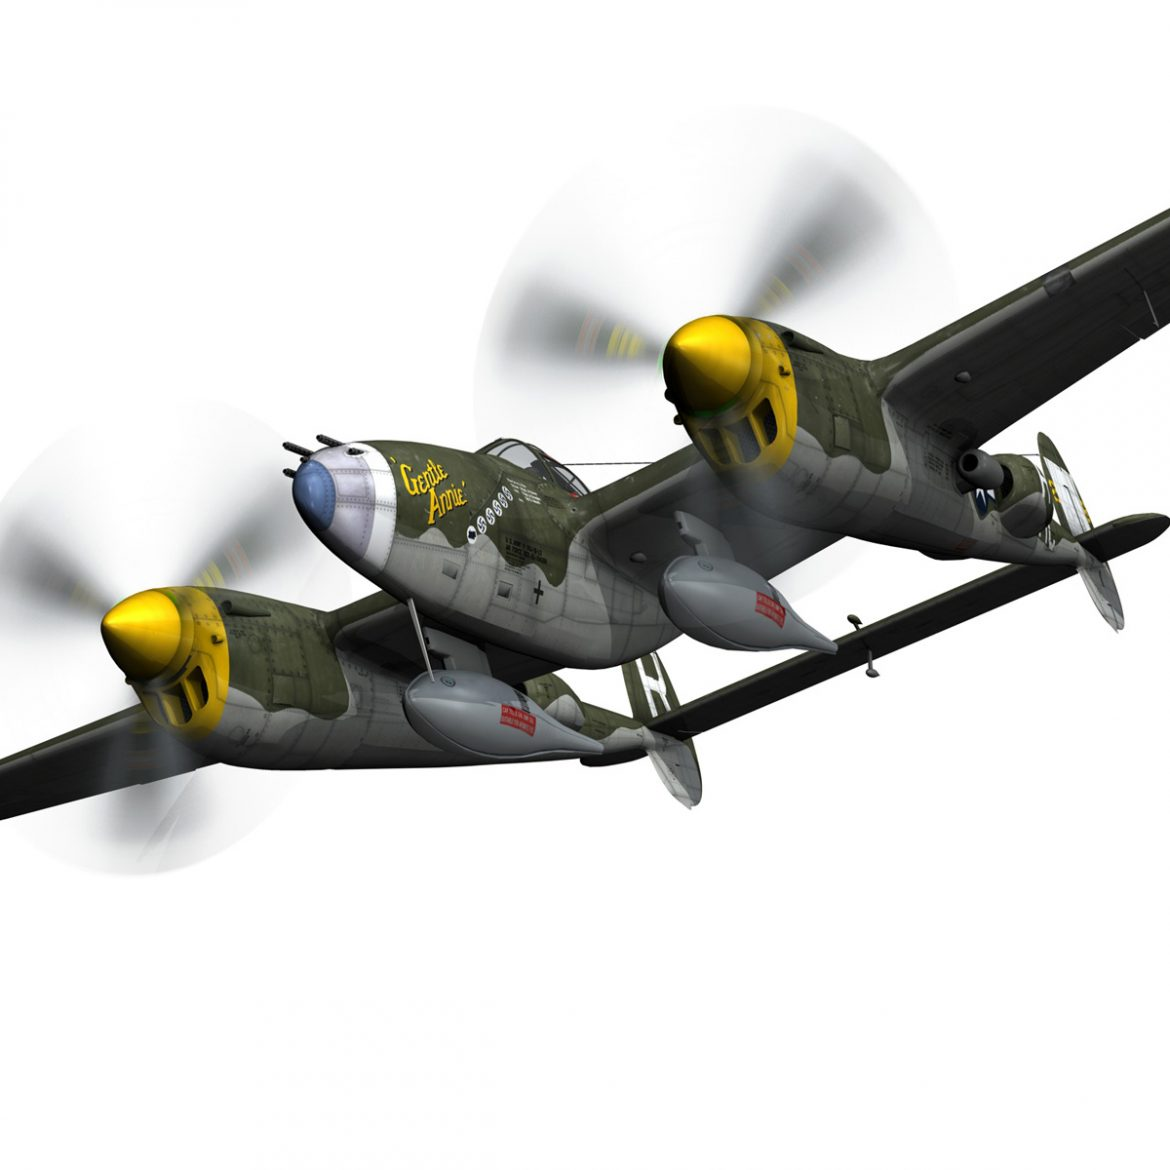 lockheed p-38 lightning – gentle annie 3d model fbx c4d lwo obj 300082